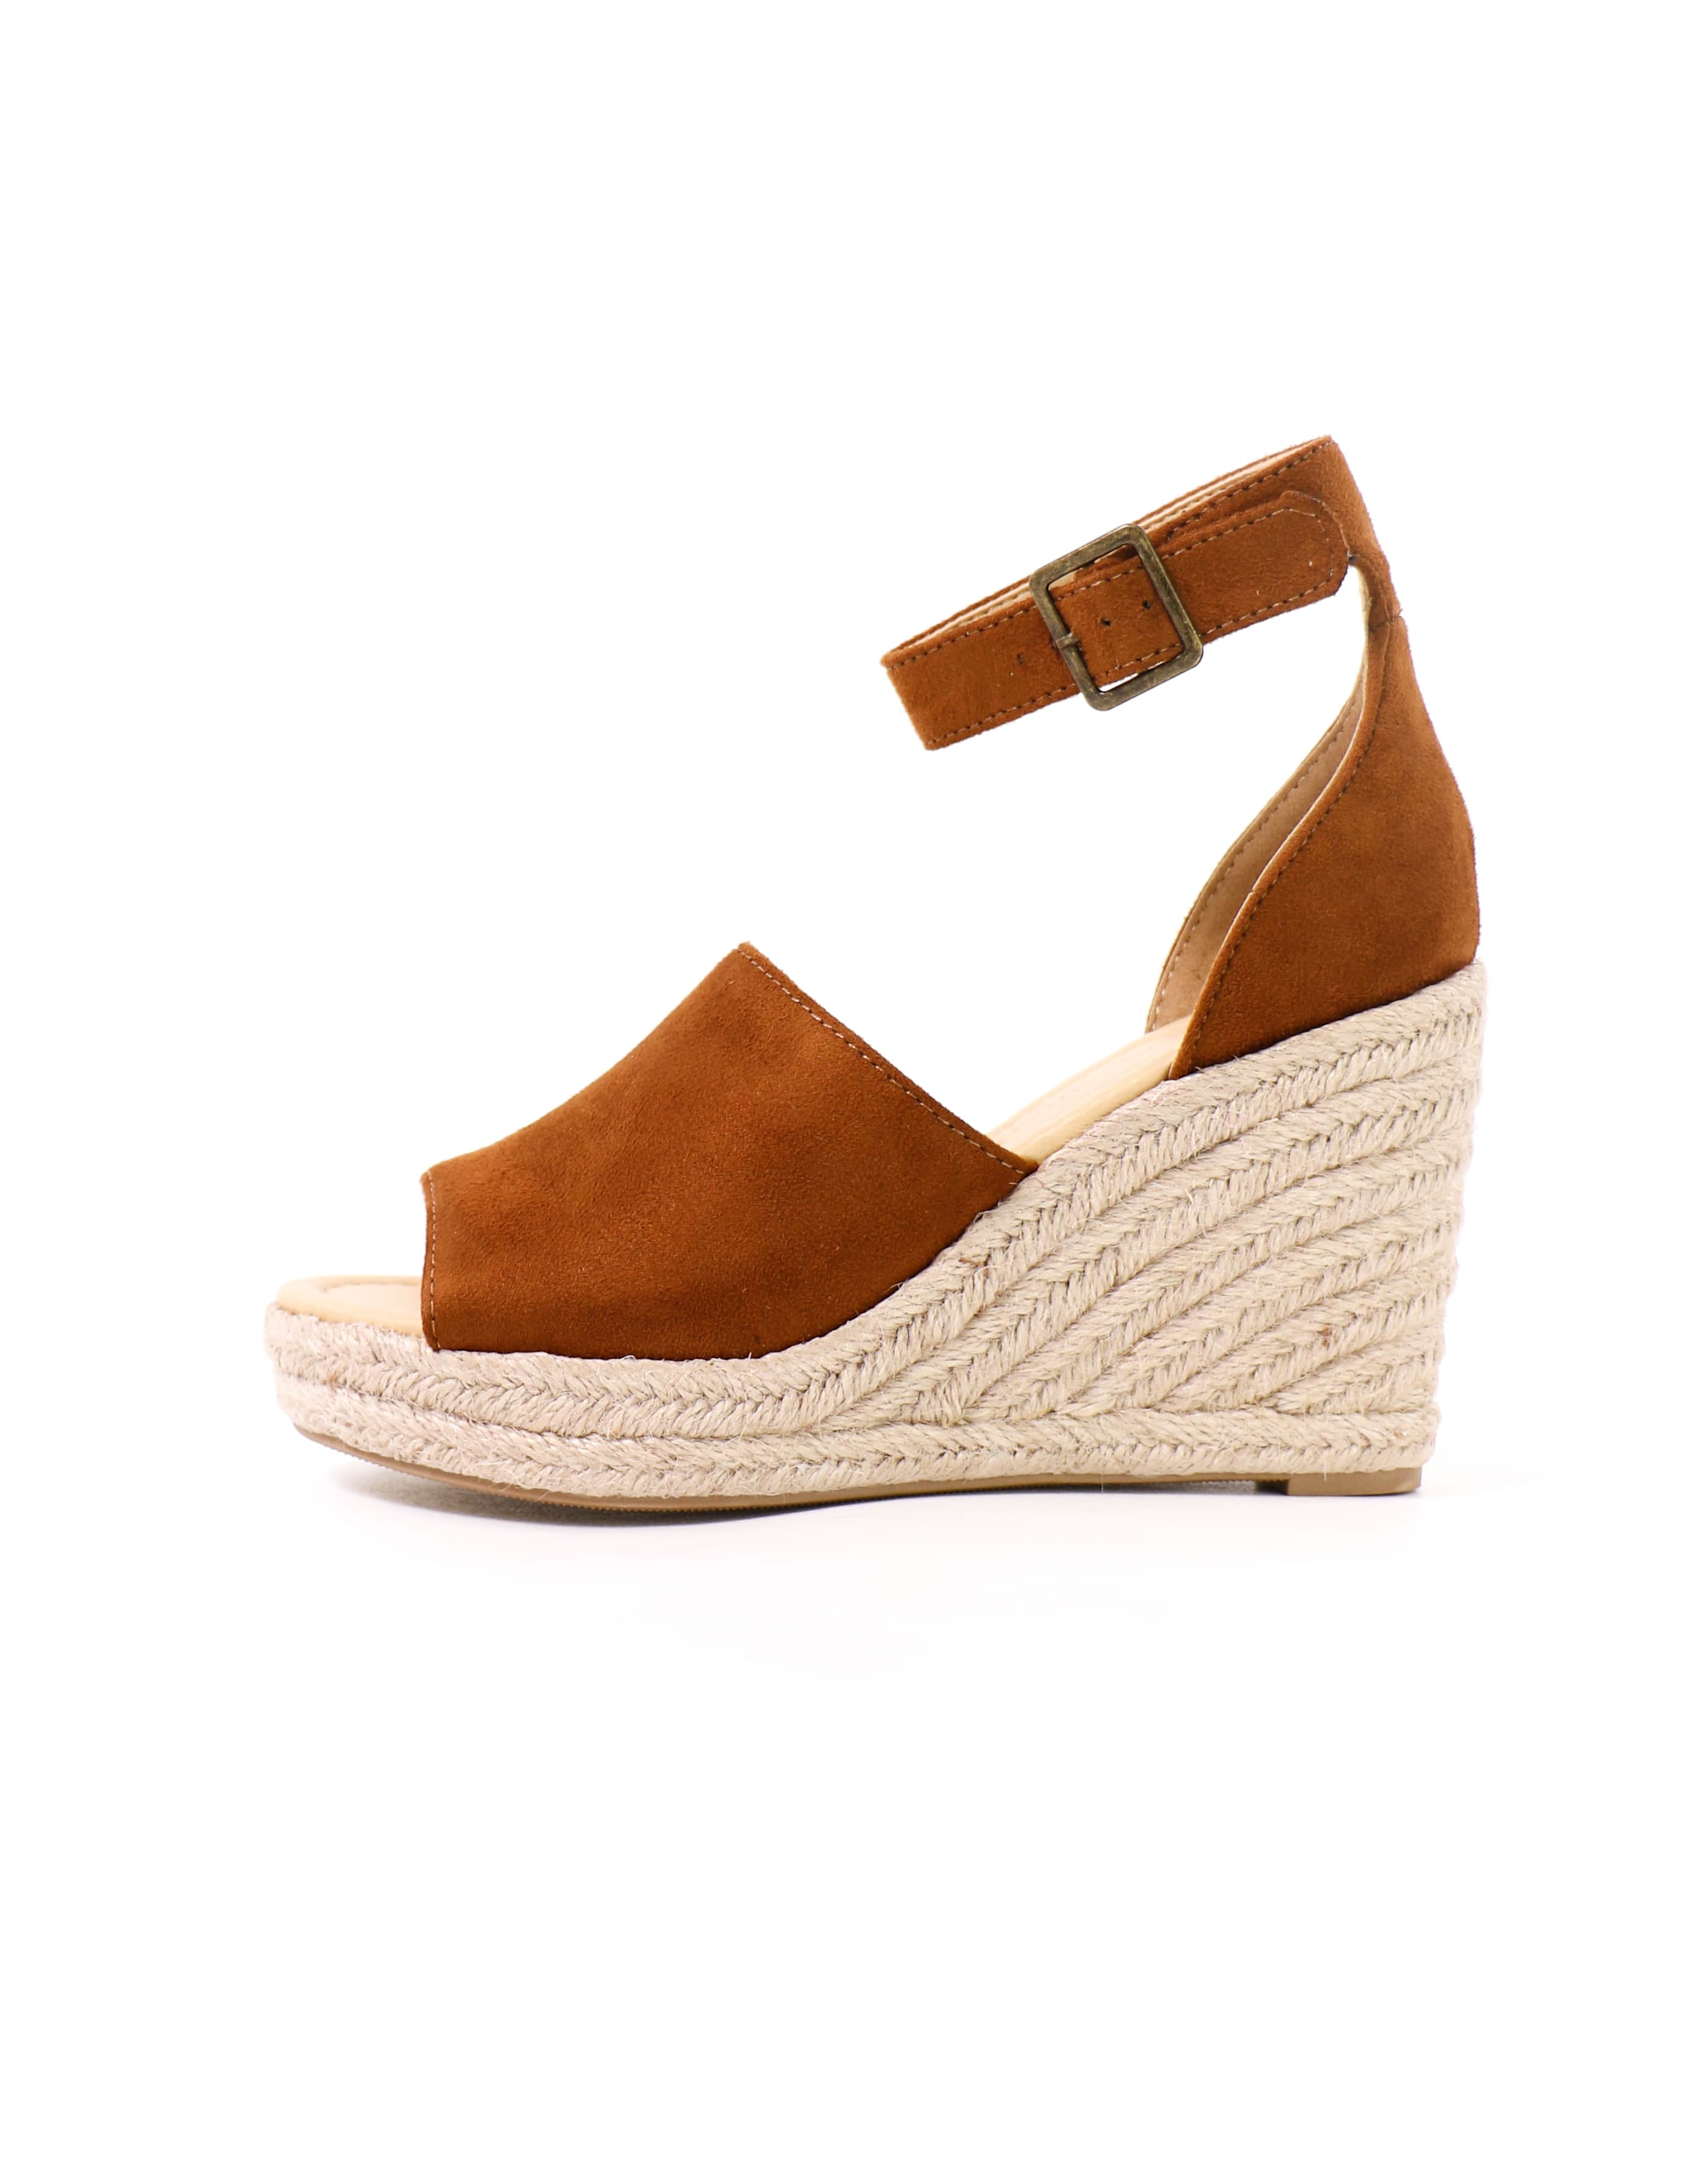 this is not a espadrille tan wedge platform sandal on white background - elle bleu shoes